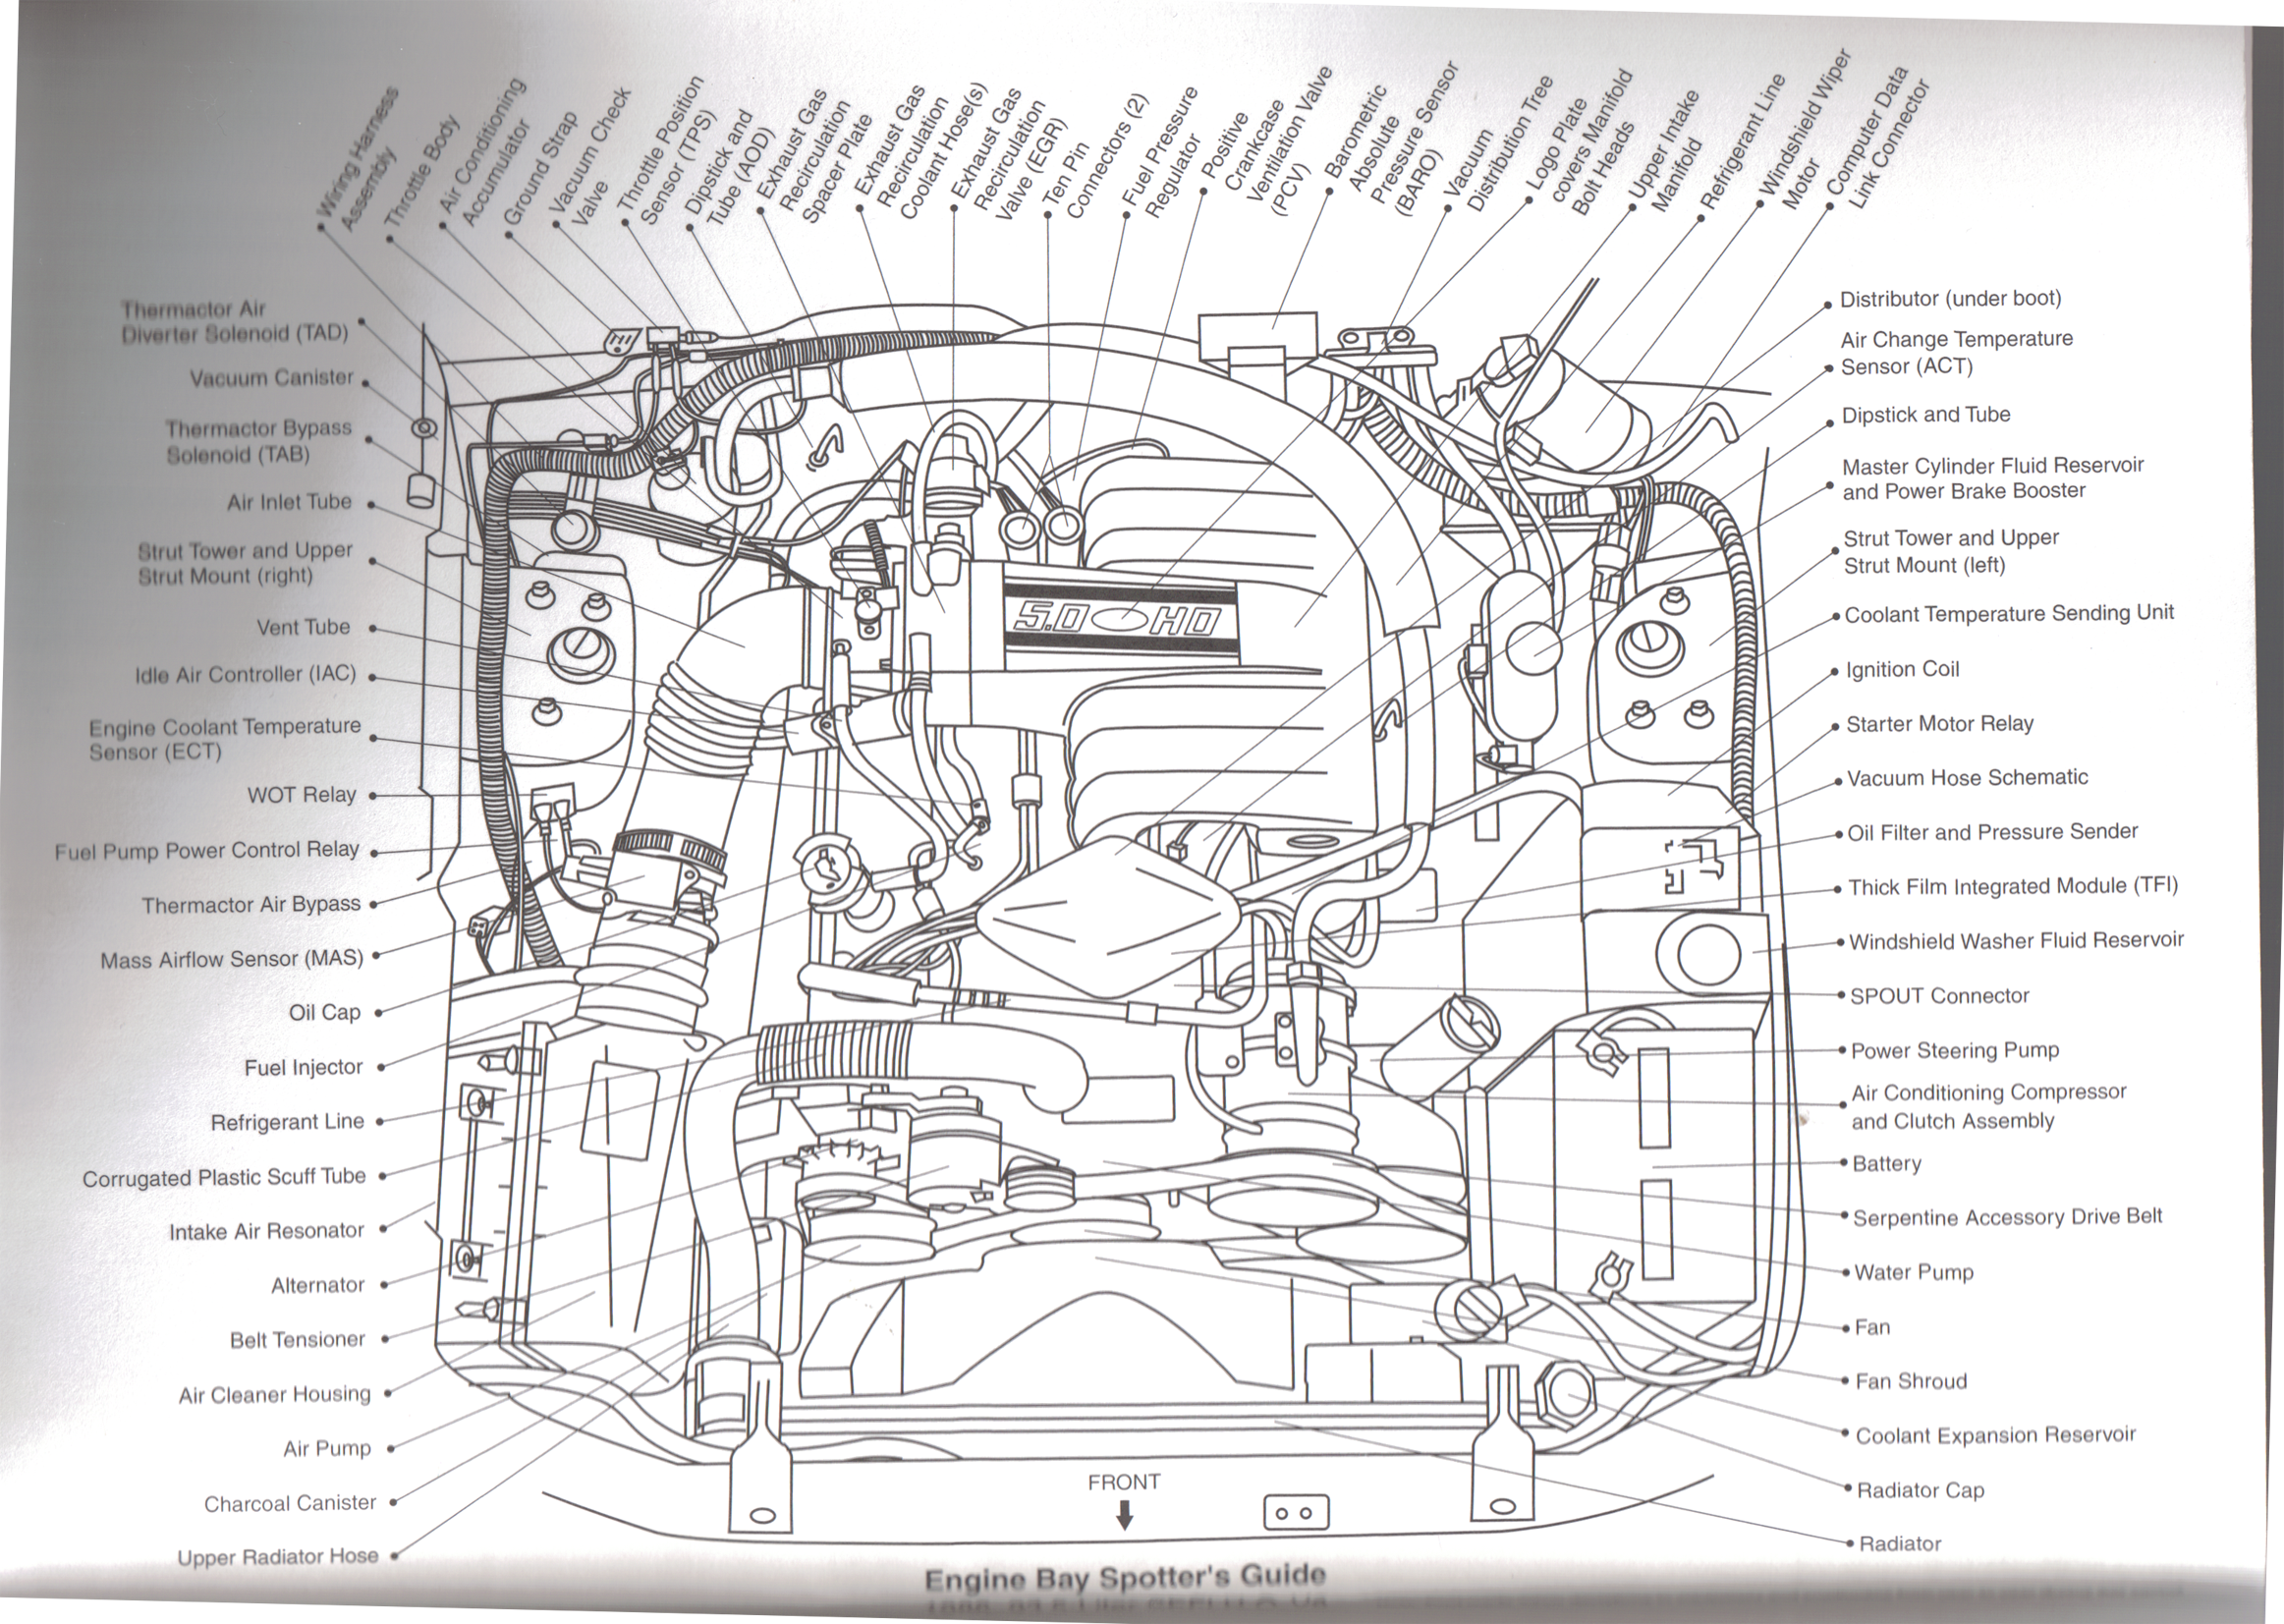 1987 1993 foxbody 5.0 sefi v8 engine part diagram everything you need to know about 1979 1993 foxbody mustangs Basic Turn Signal Wiring Diagram at n-0.co